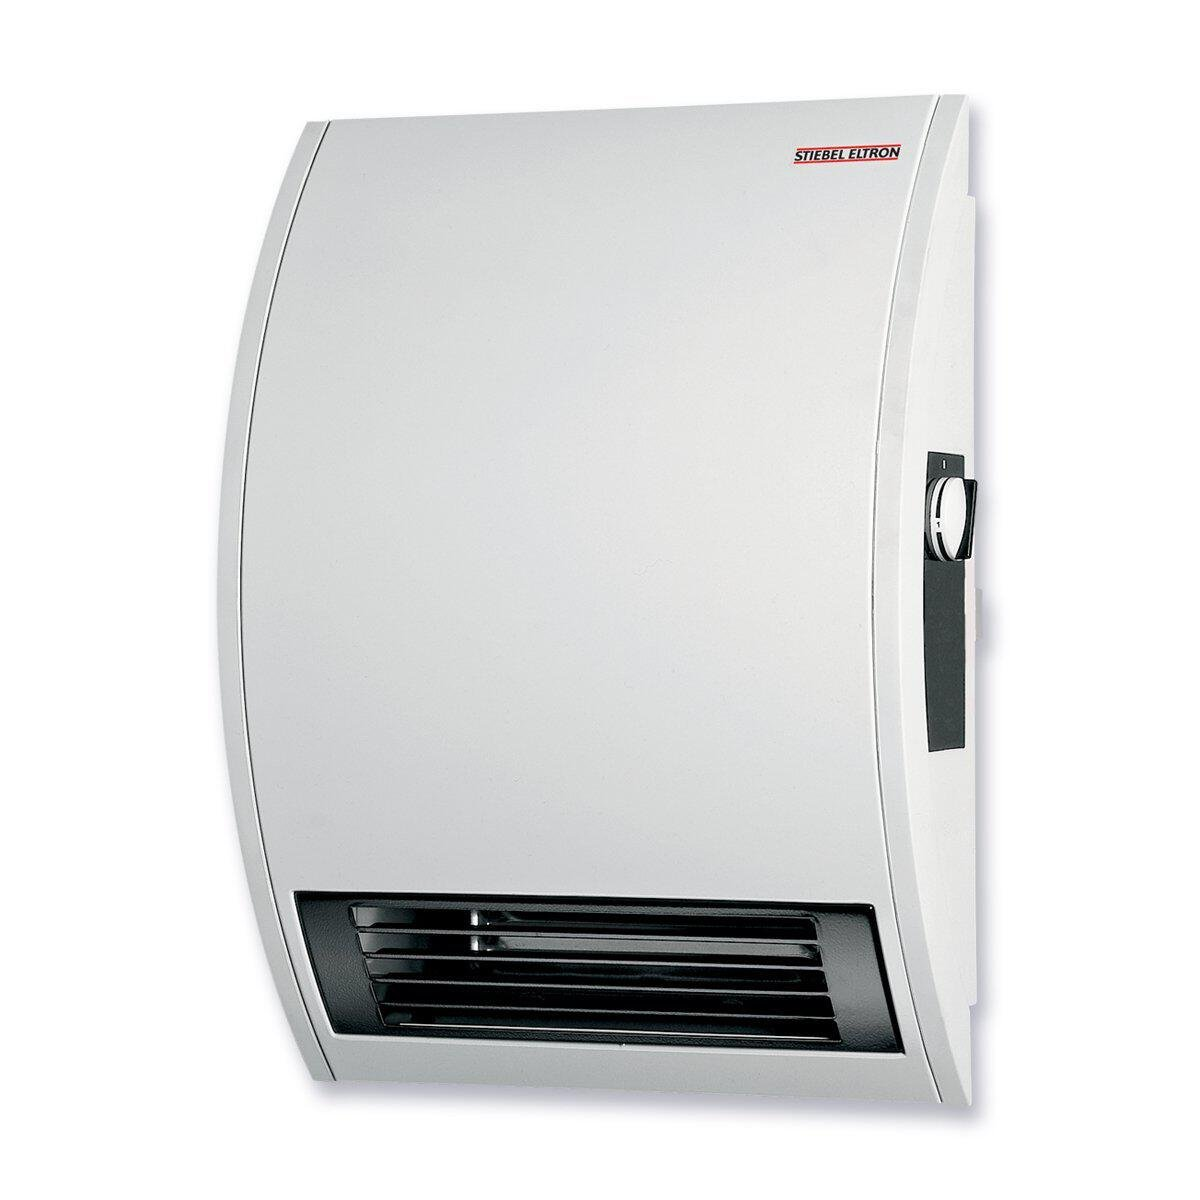 Electric wall mounted heaters for bathrooms - Electric Wall Mounted Heaters For Bathrooms 0